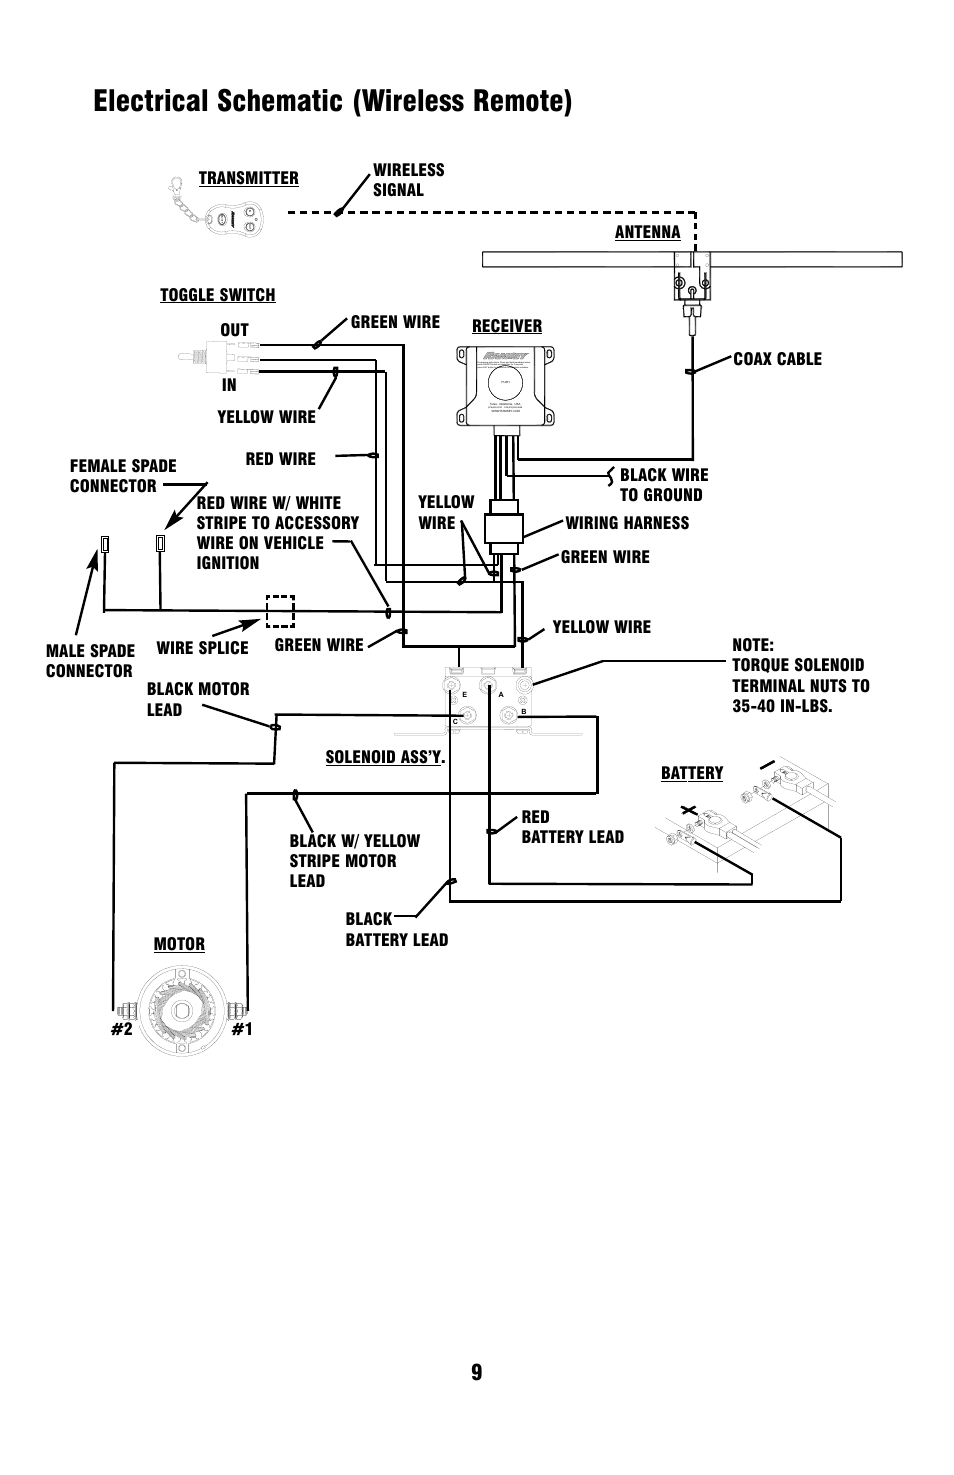 ramsey wiring diagram electrical schematic  wireless remote   wire splice ramsey winch ramsey rep 8000 wiring diagram wireless remote   wire splice